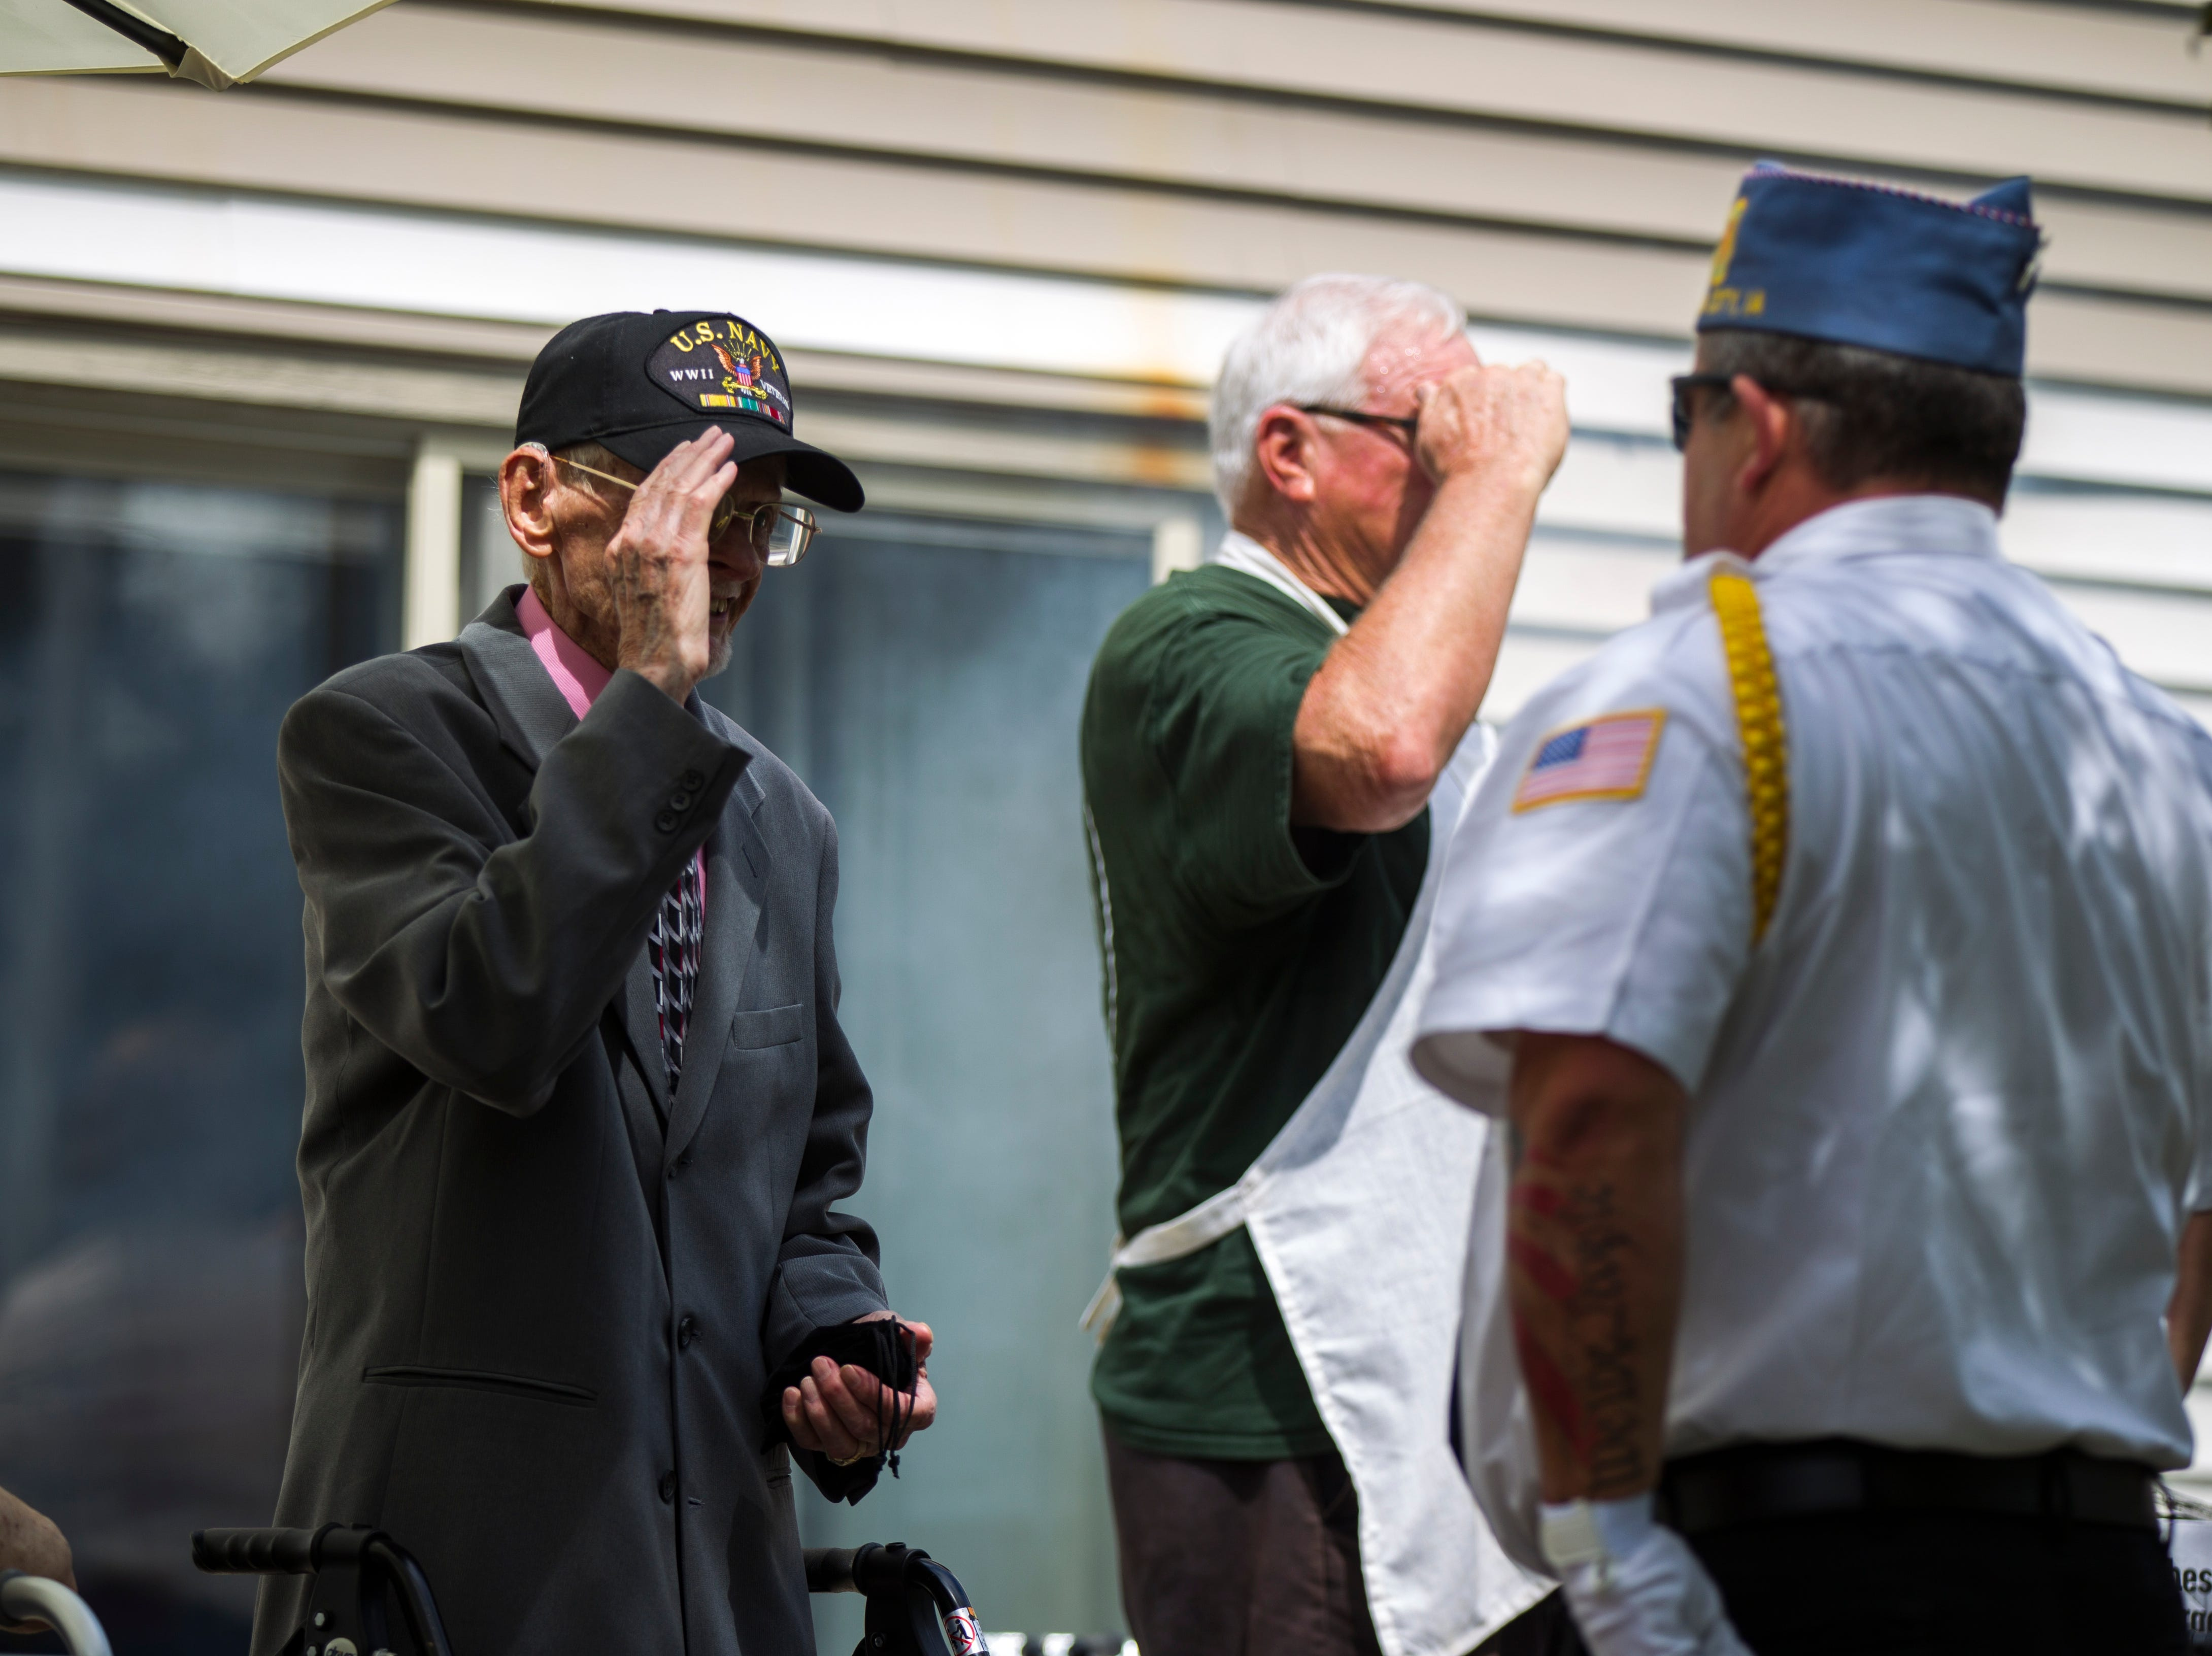 World War II U.S. Navy veteran Russell H. Ware (left) is acknowledged during a dedication ceremony on Monday, Sept. 3, 2018, at the Autumn Park Apartments in Iowa City.